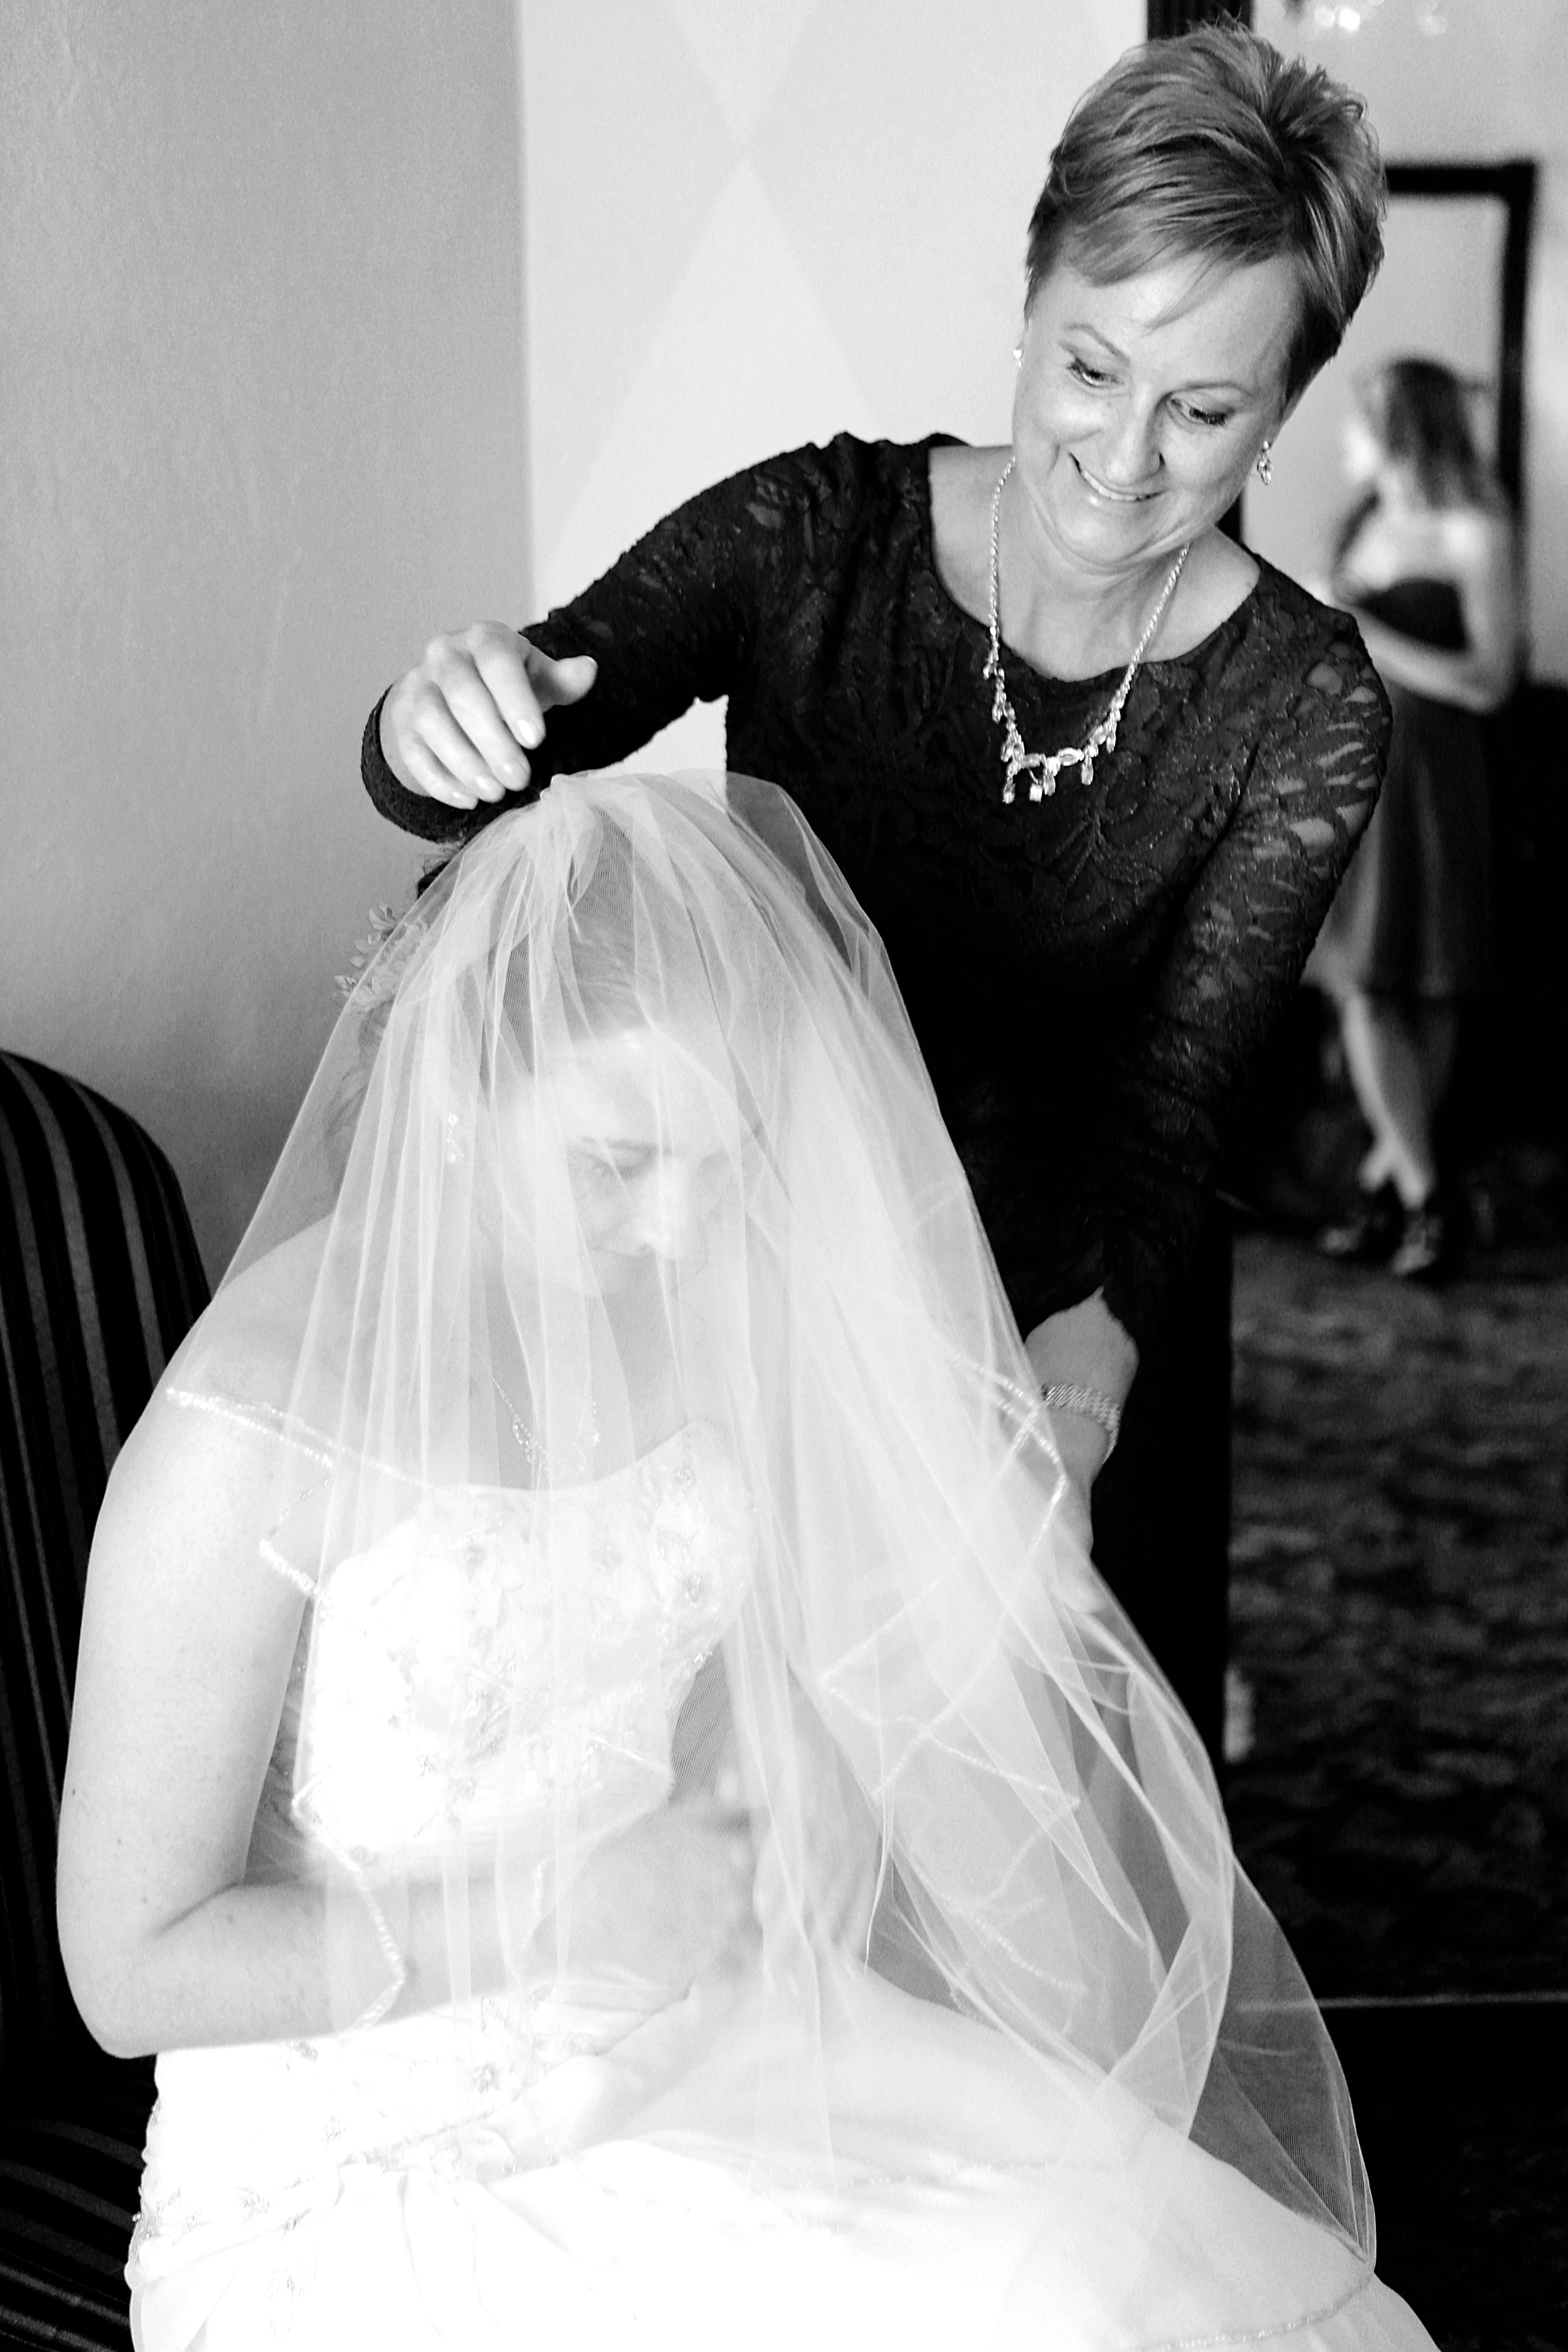 ShadowcatcherGalleryOne_SanDiegoWeddingPhotogrpaher_049.jpg